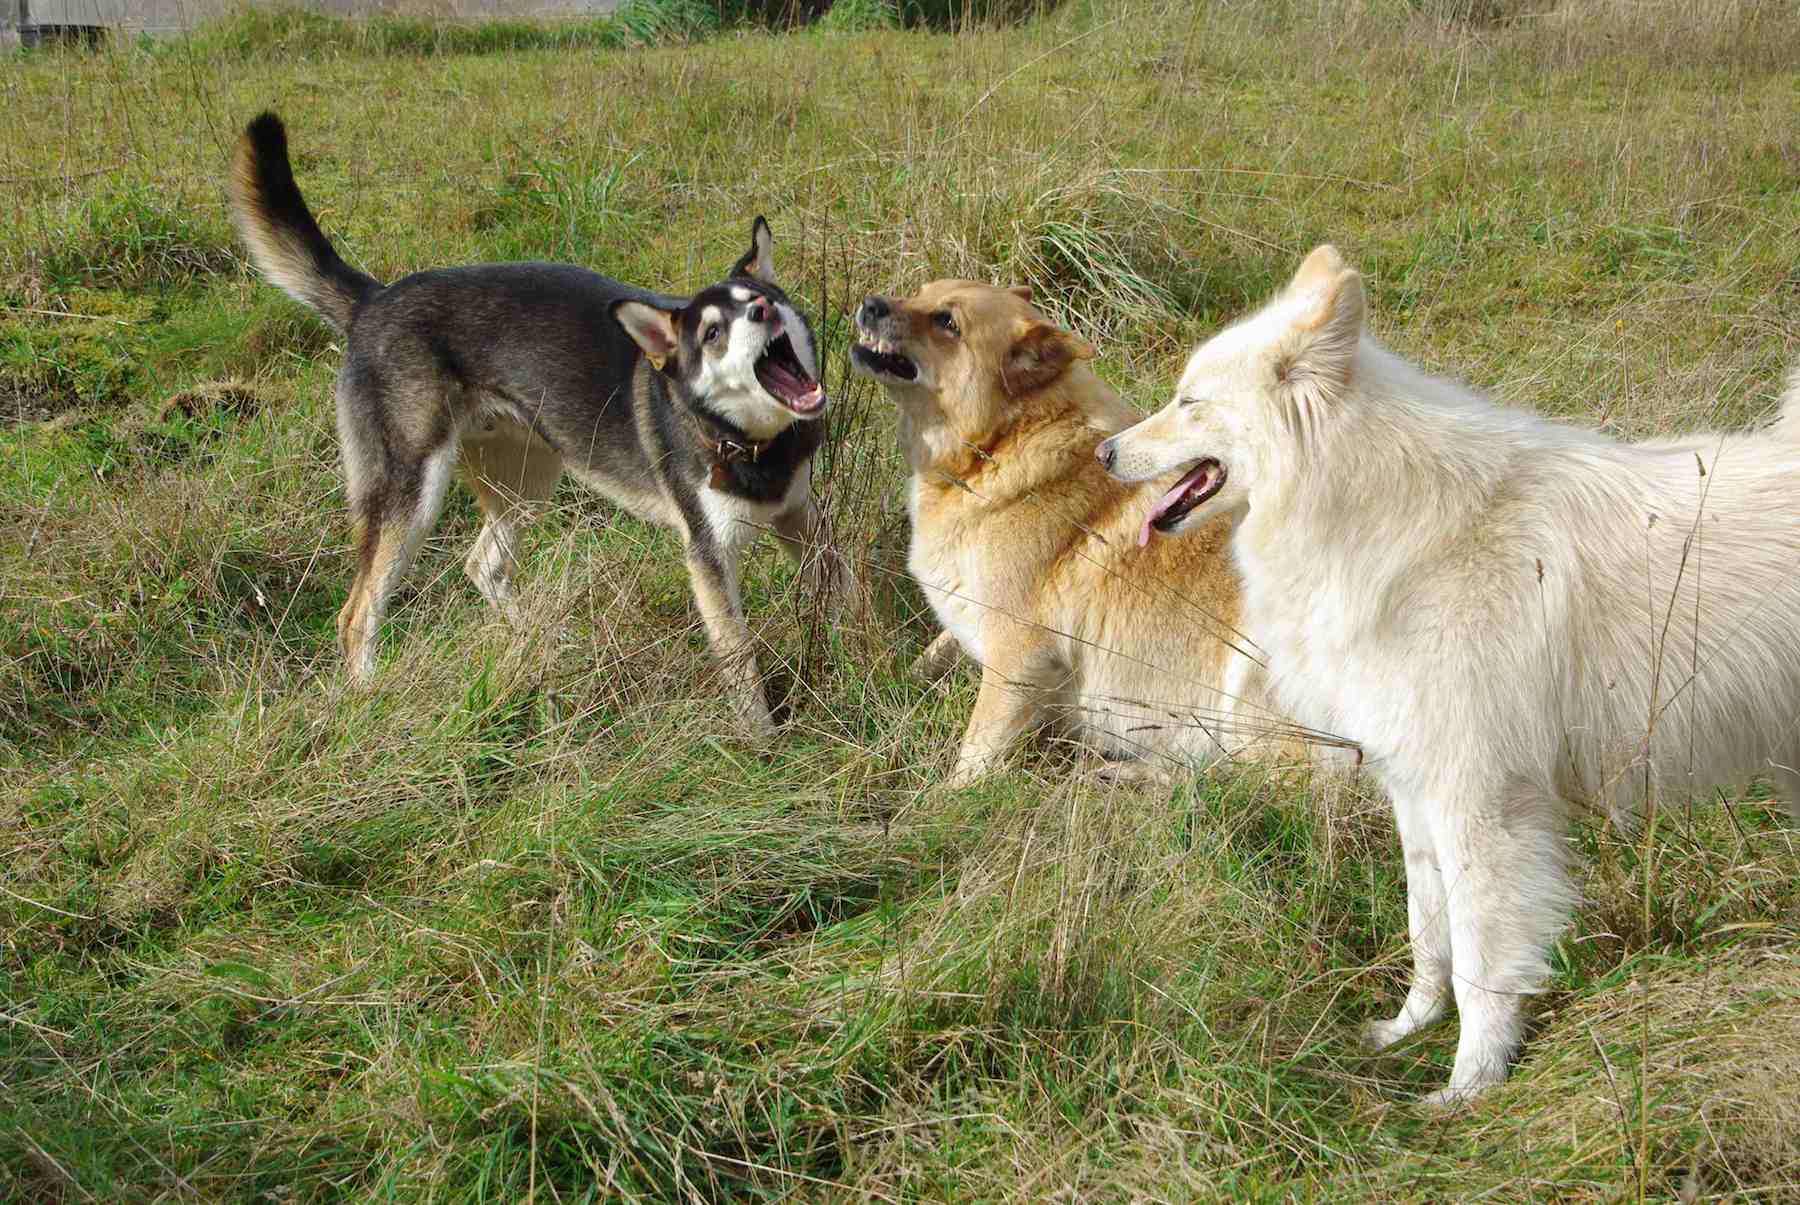 Three dogs playing and barking in a grassy field